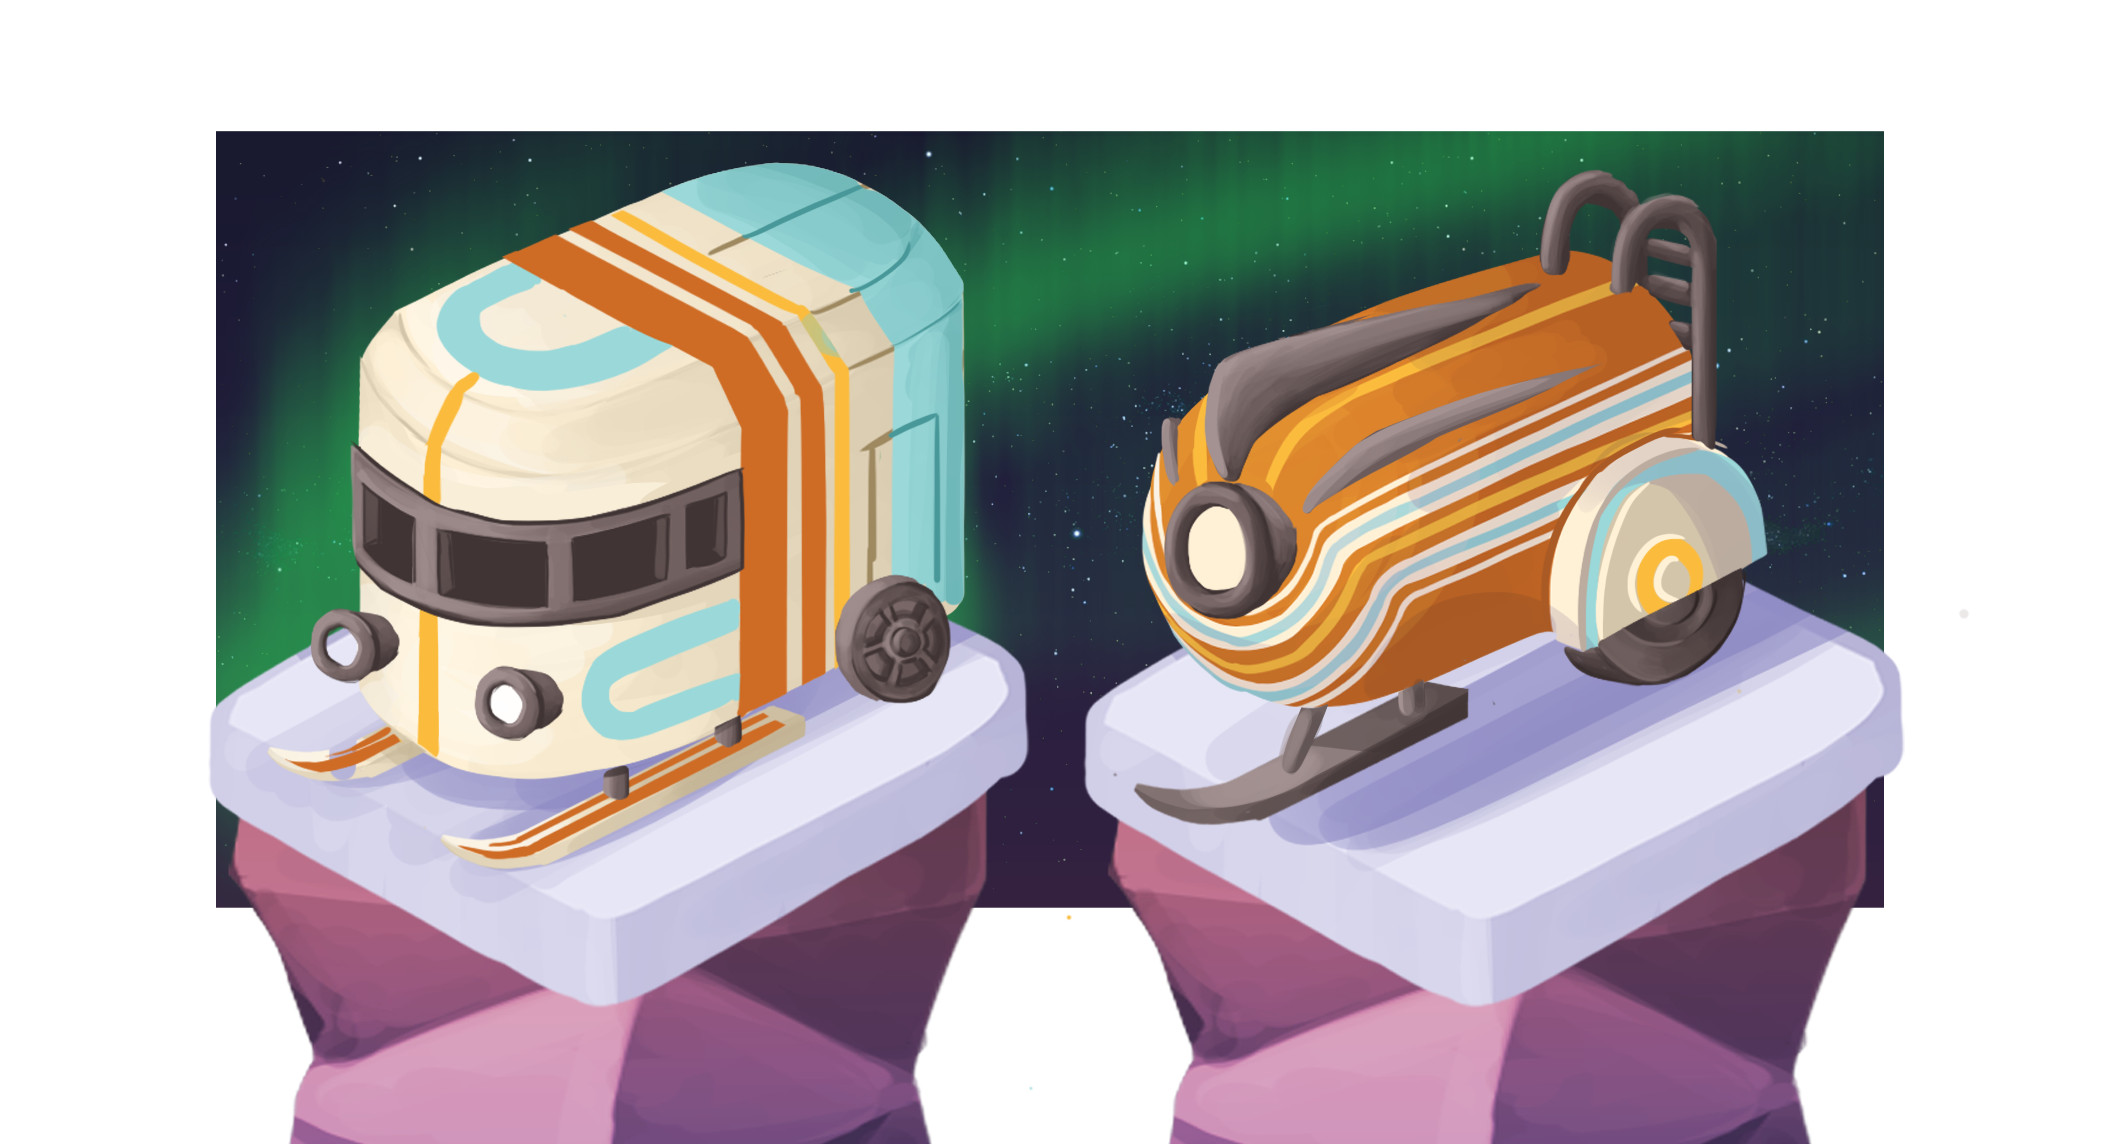 Train ideations